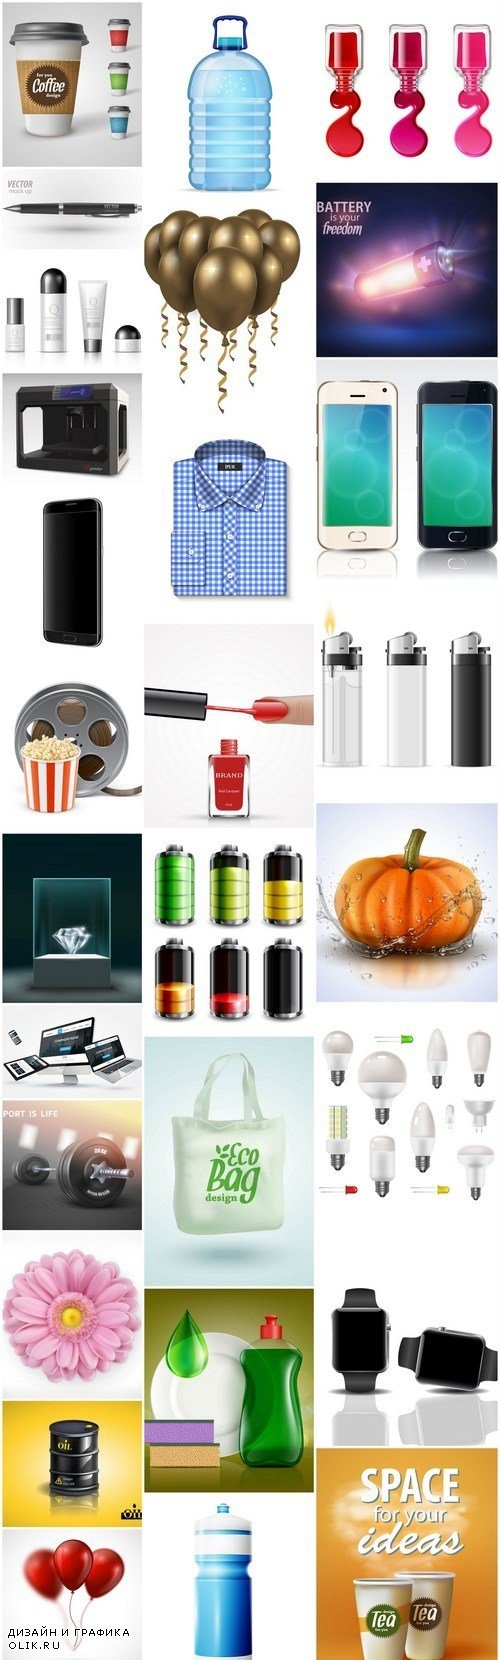 Different Realistic Design Elements - 30 Vector